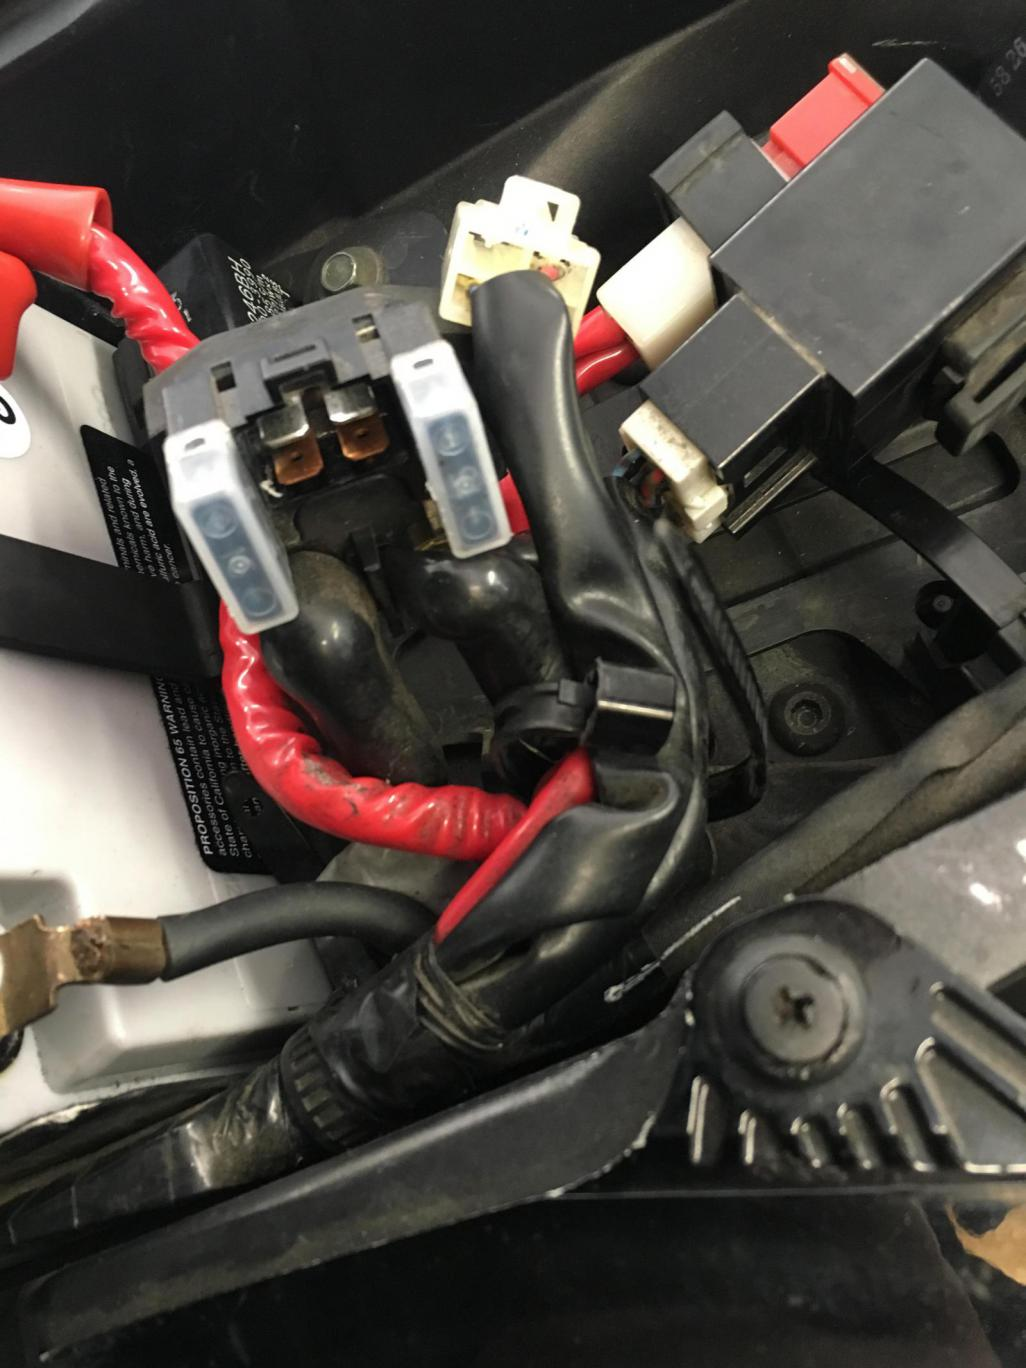 [DIAGRAM_38DE]  starting problems - not sure if relay or starter or...? | Yamaha R1 Forum:  YZF-R1 Forums | 2007 Yamaha R1 Main Fuse Location |  | R1 Forum